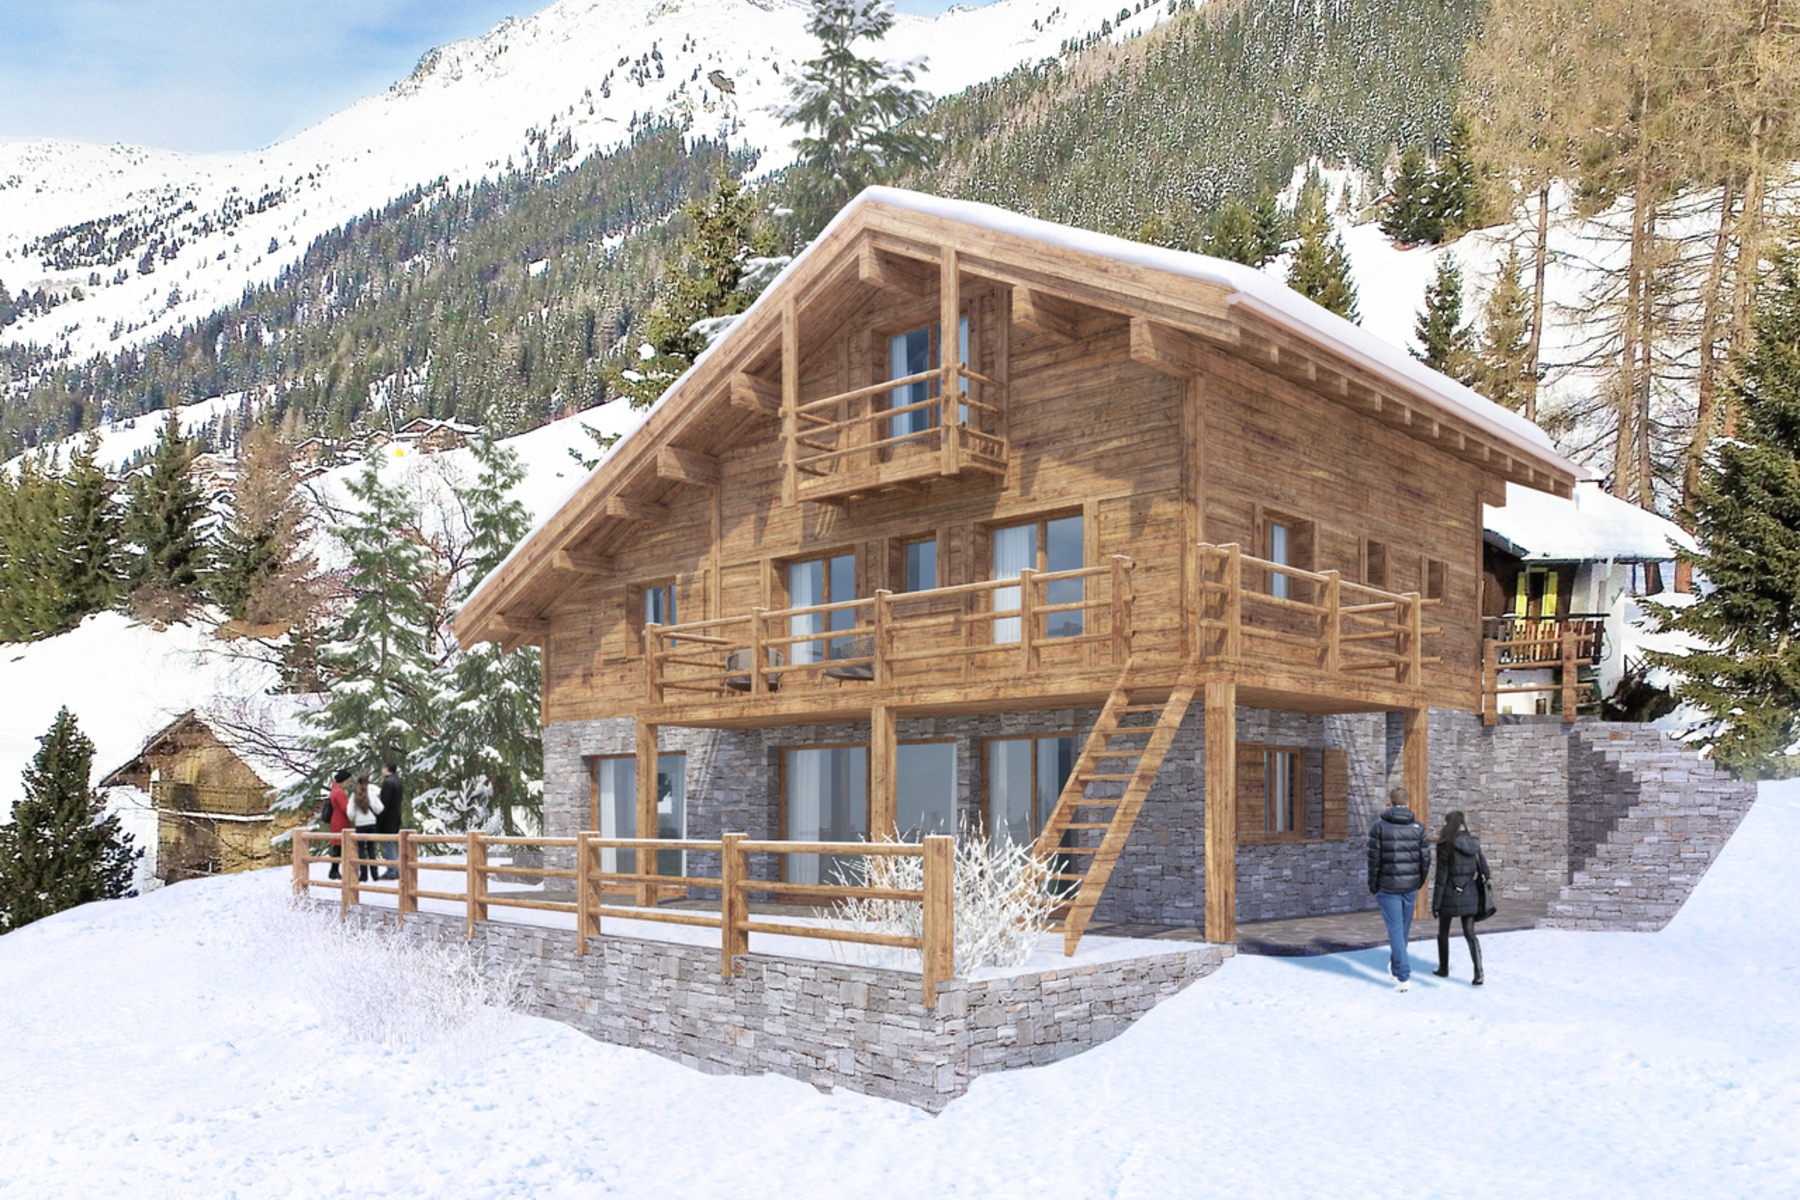 Single Family Home for Sale at Chalet PHALENES, ski-in ski-out Verbier, 1936 Switzerland